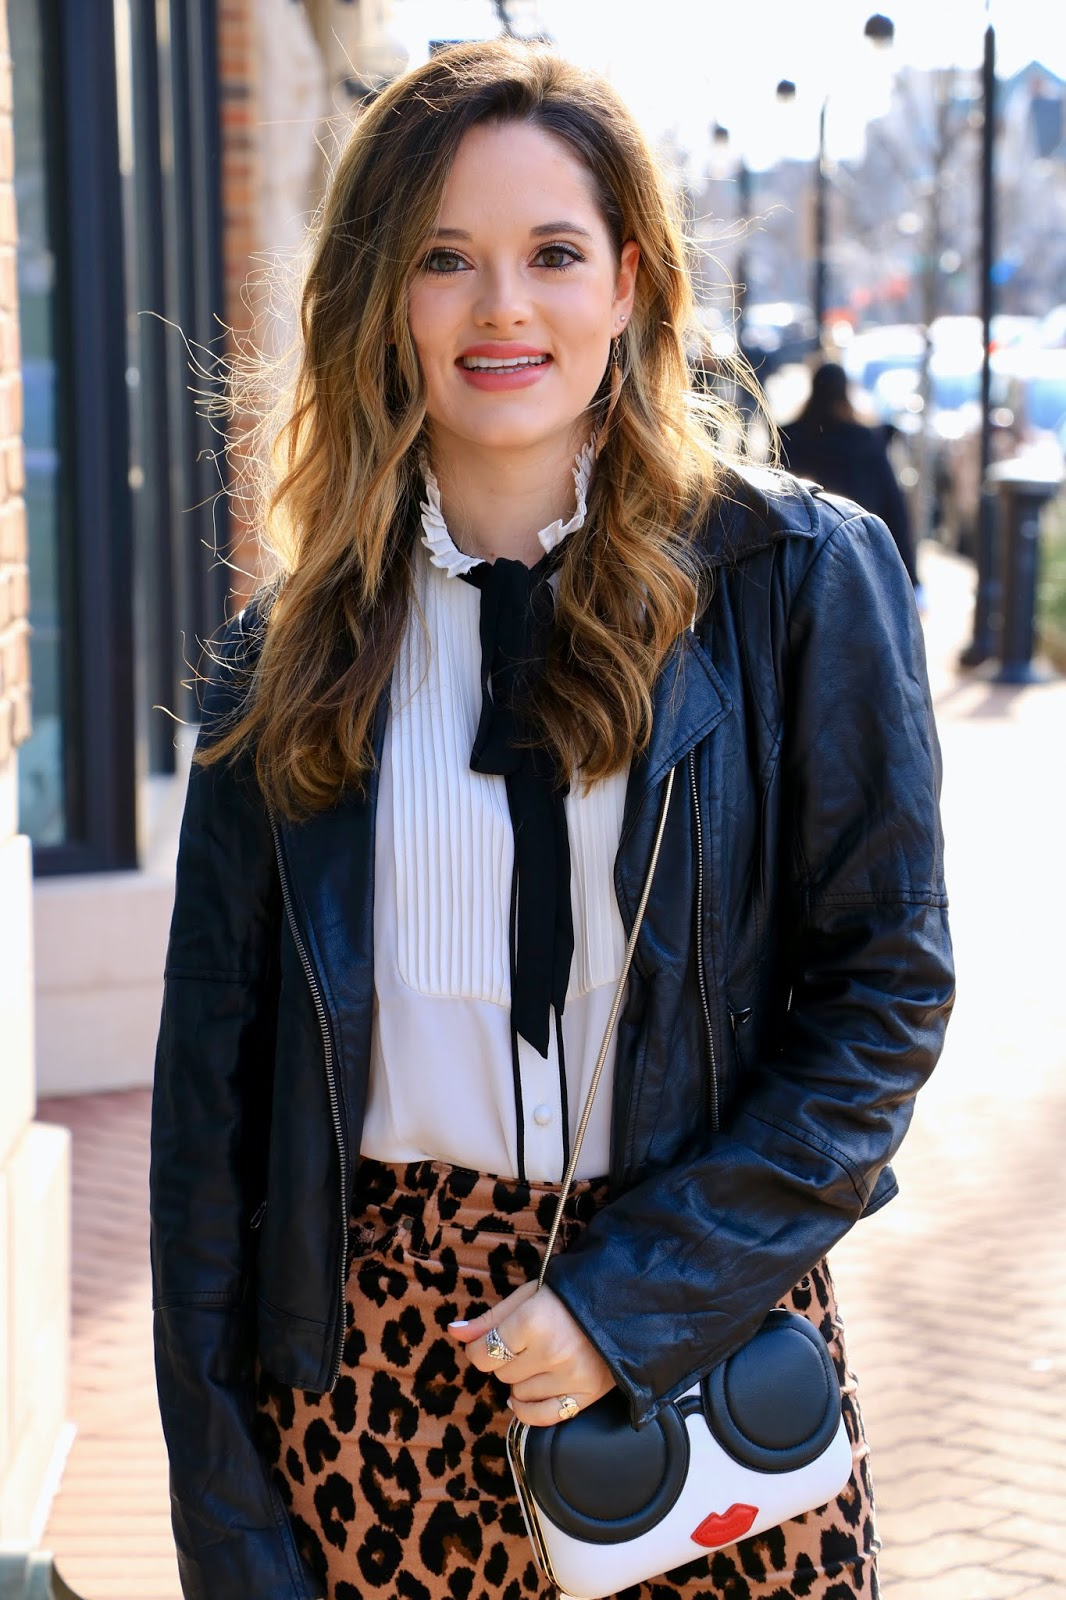 Nyc fashion blogger Kathleen Harper's bowtie blouse outfit